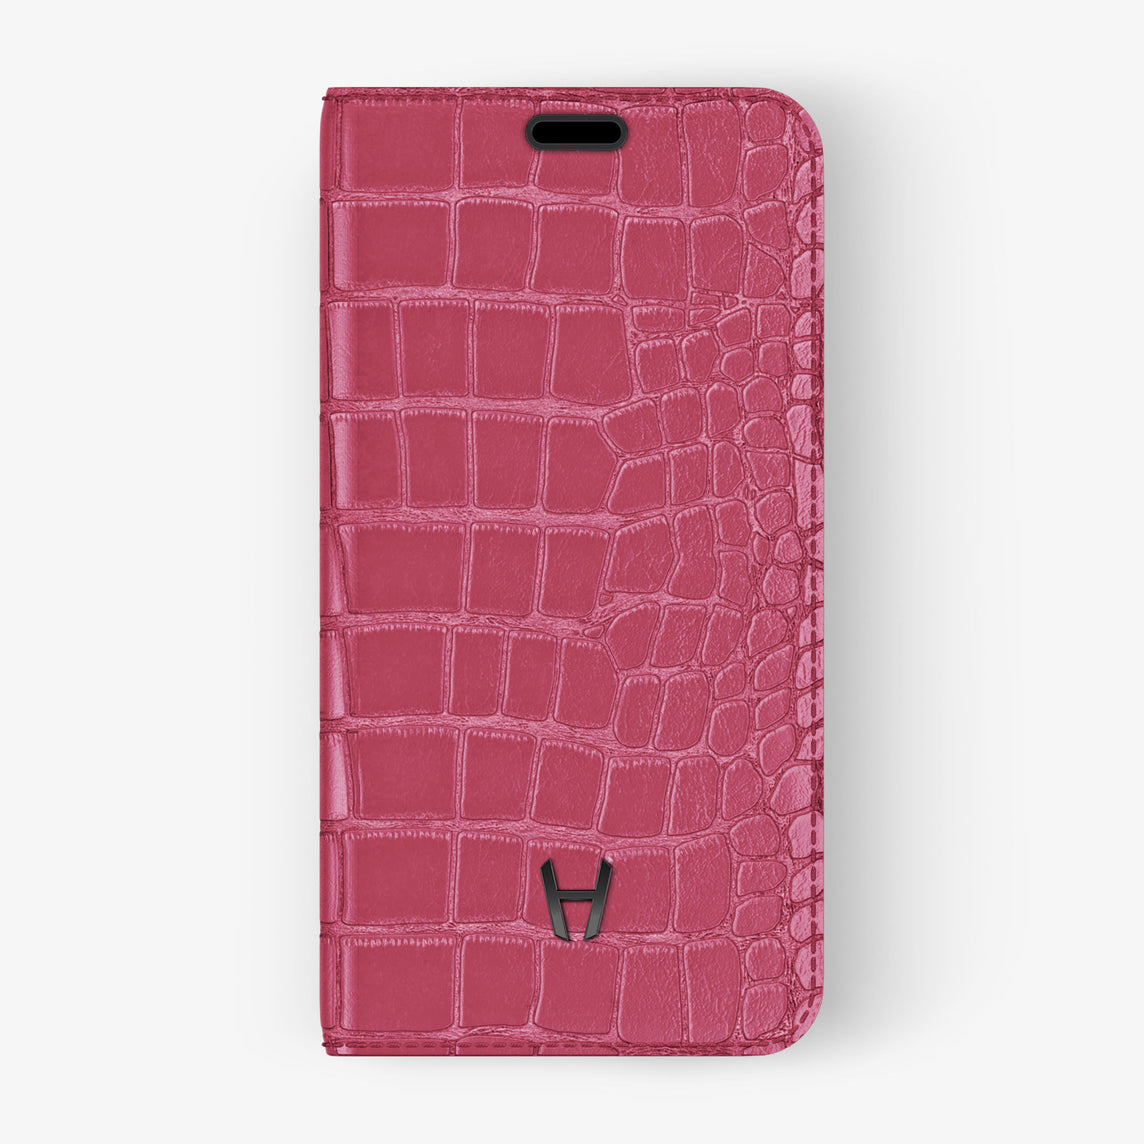 Alligator Folio Case iPhone 11 Pro | Pink Girly - Black